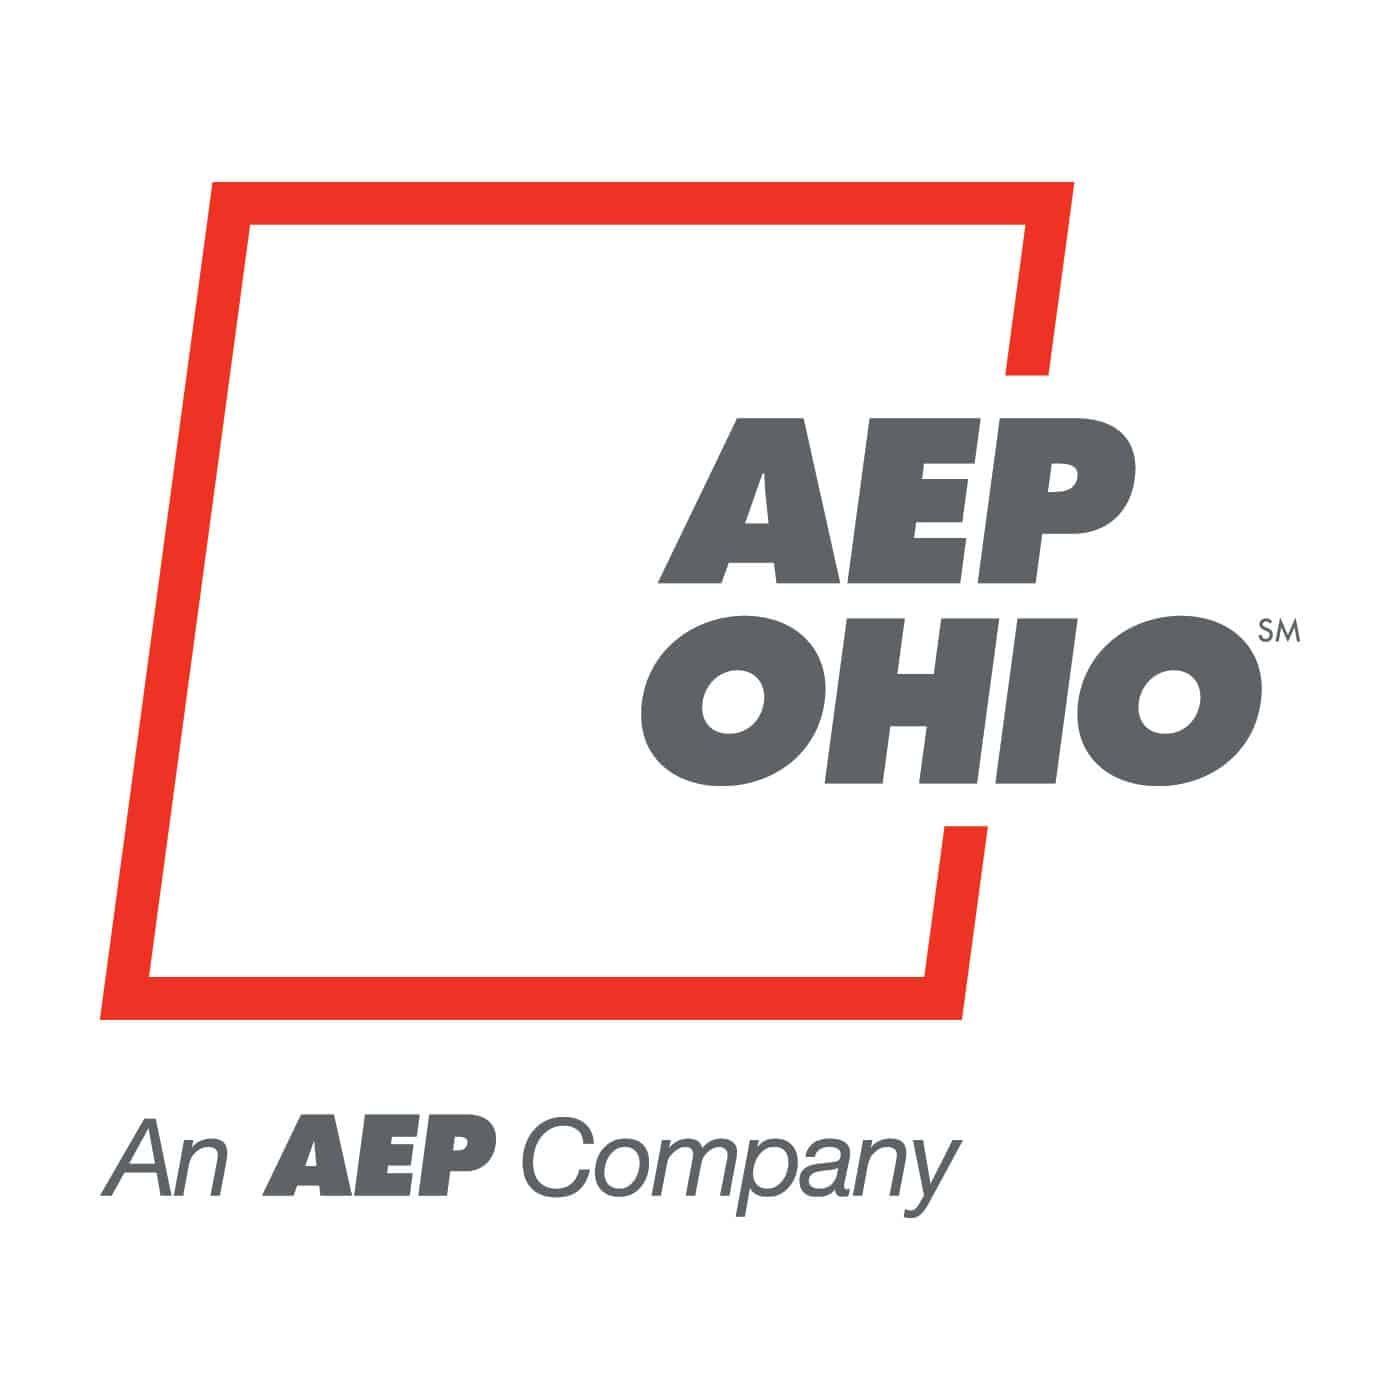 aep ohio power outages